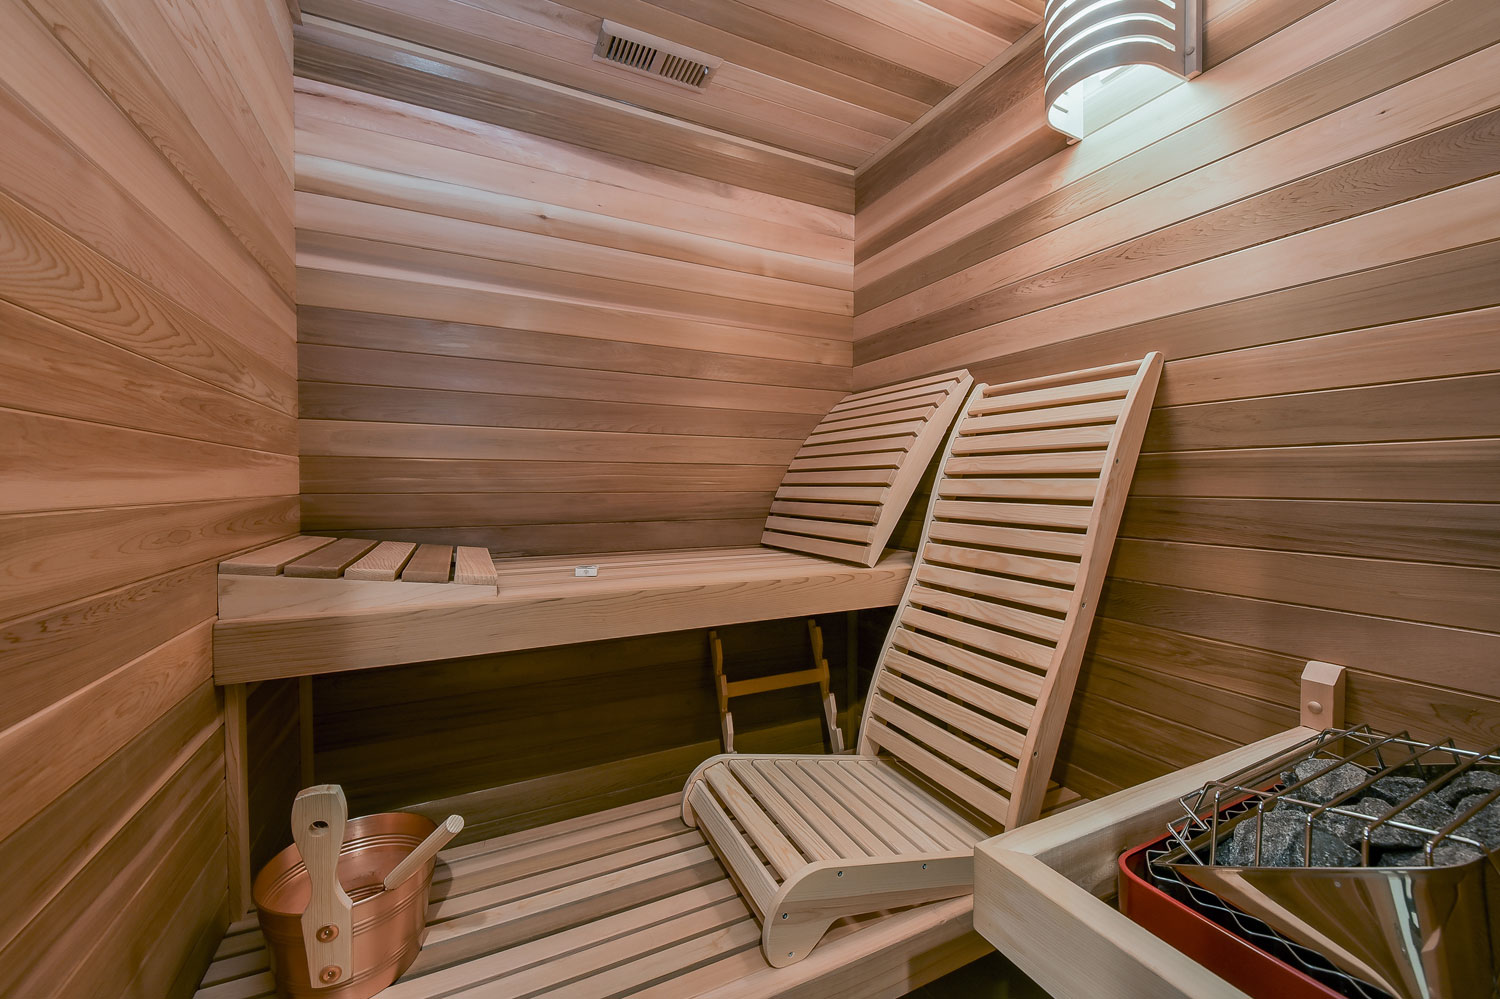 Dennis adelina 39 s basement remodel pictures home for Building a sauna in the basement